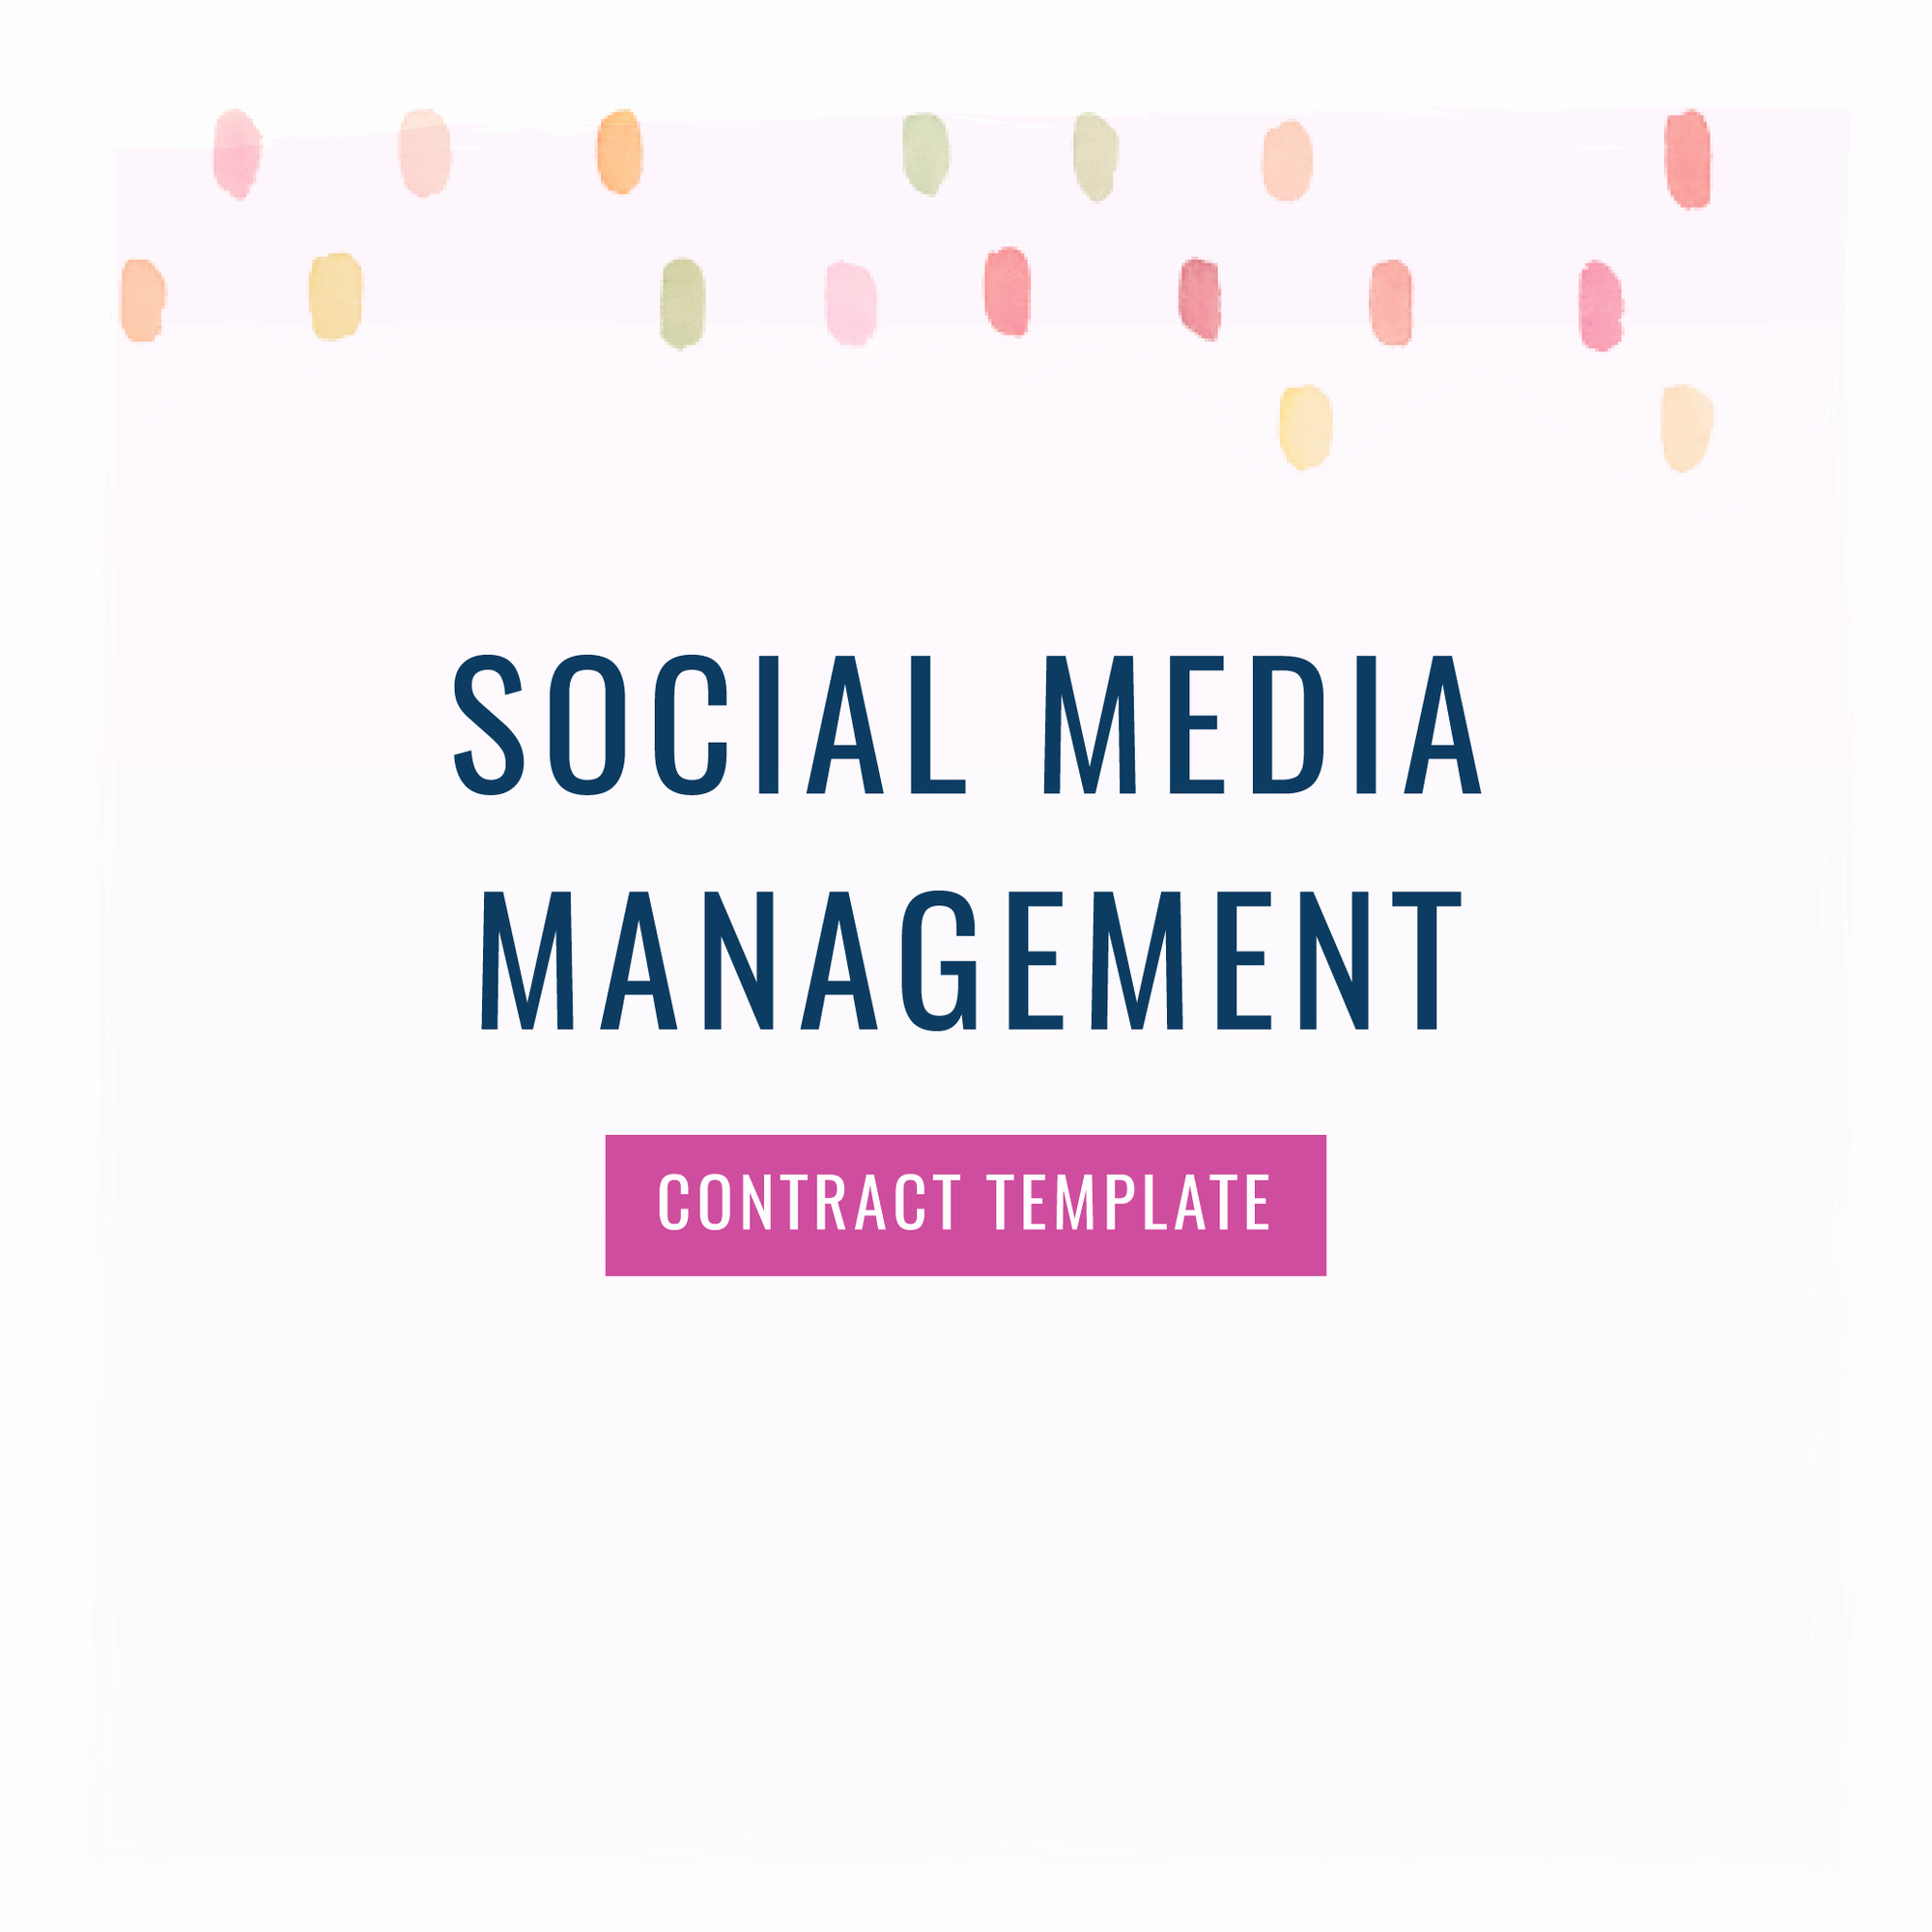 Social Media Management Contract Beautiful social Media Manager Contract Template the Contract Shop